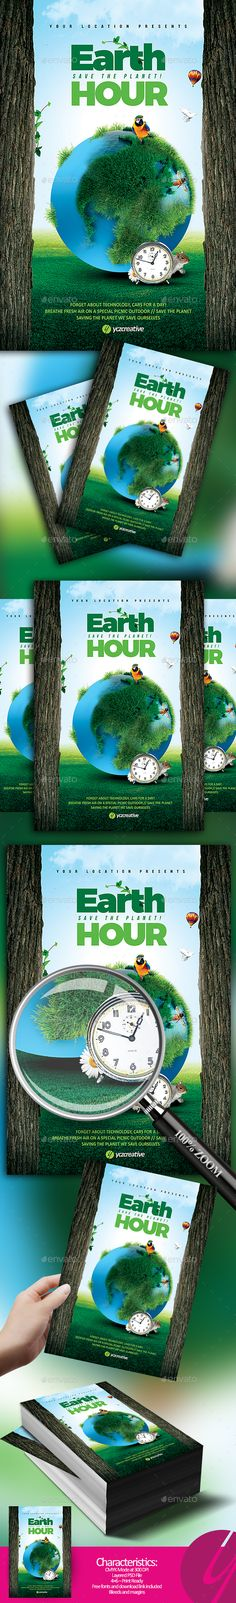 Earth Hour Flyer — Photoshop PSD #save #flyer • Download ➝ https://graphicriver.net/item/earth-hour-flyer/19984364?ref=pxcr